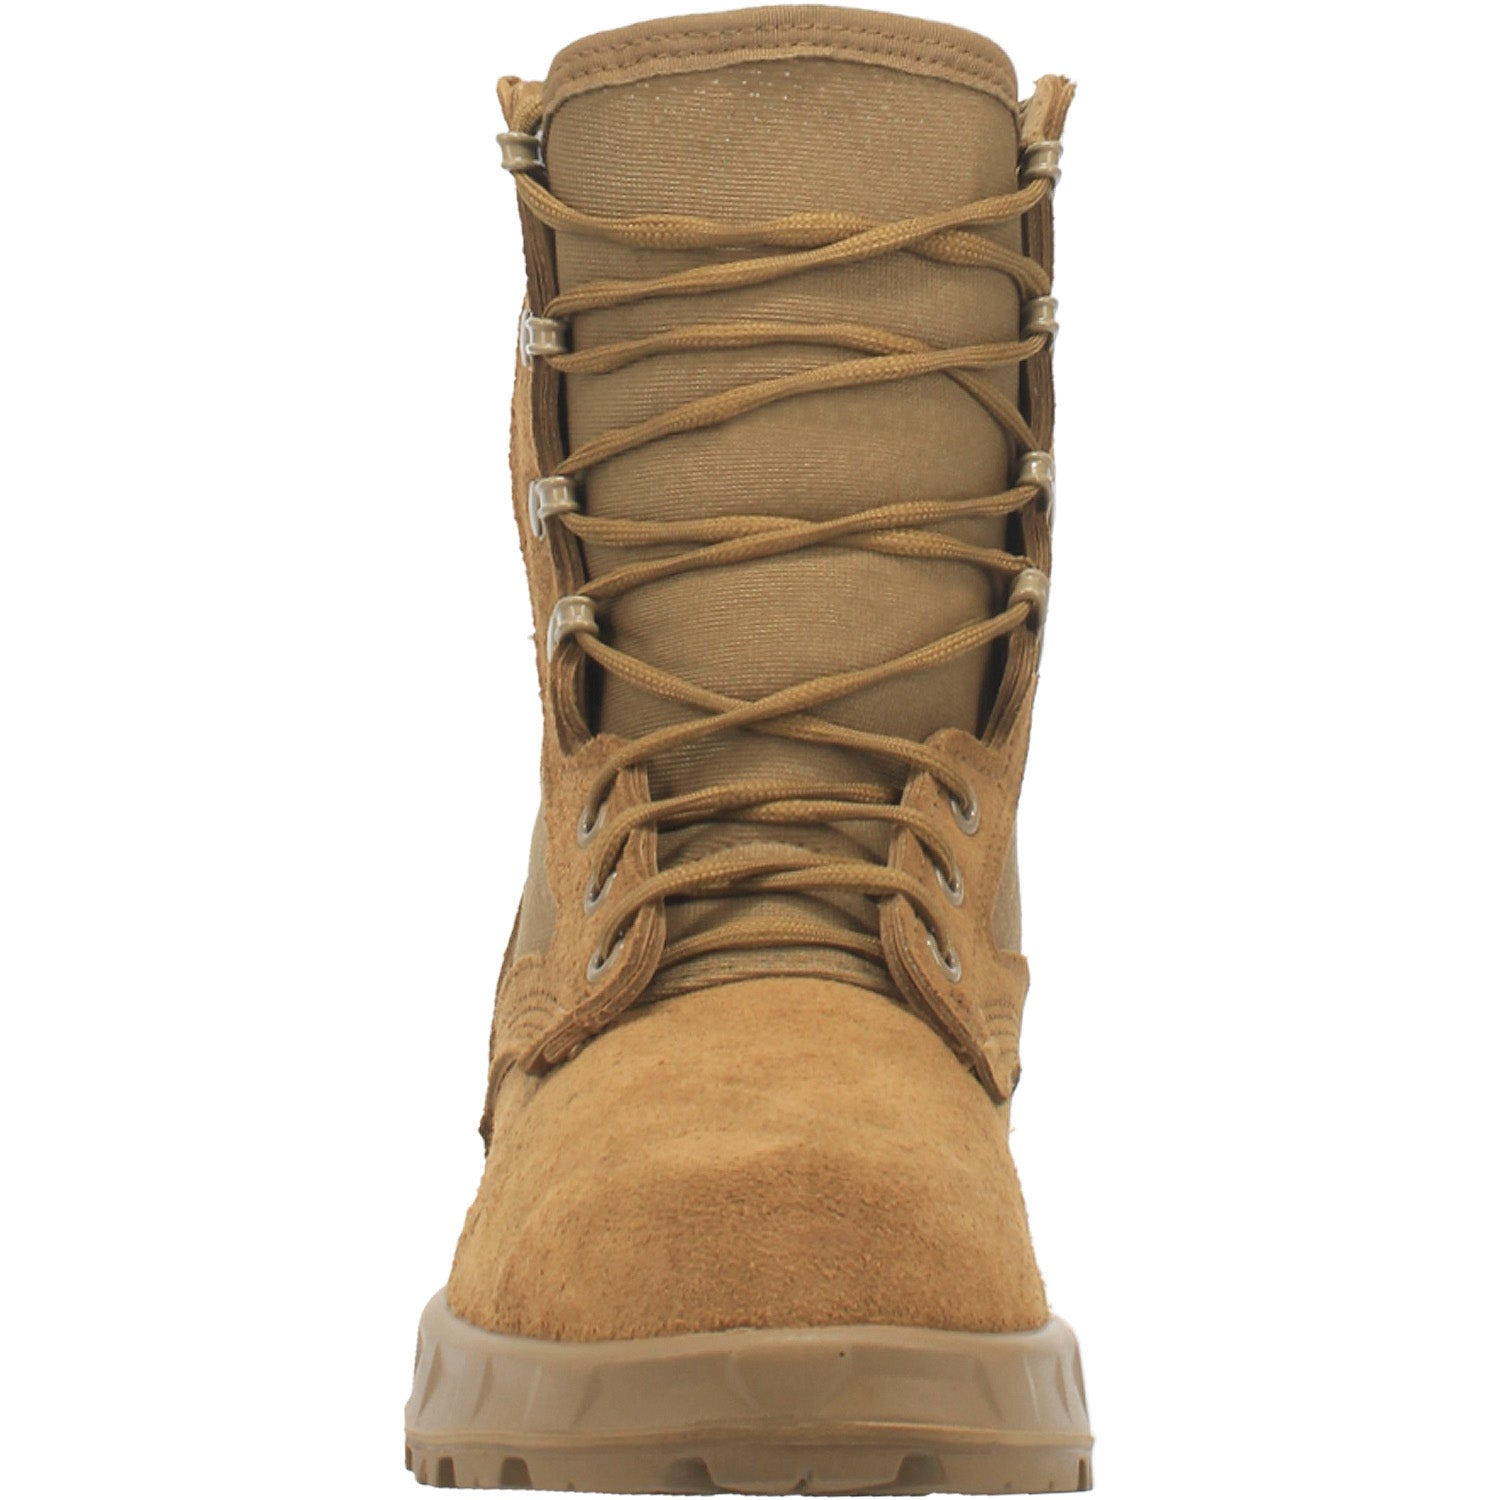 T2 Ultra Light Hot Weather Combat Boot 14940793045034